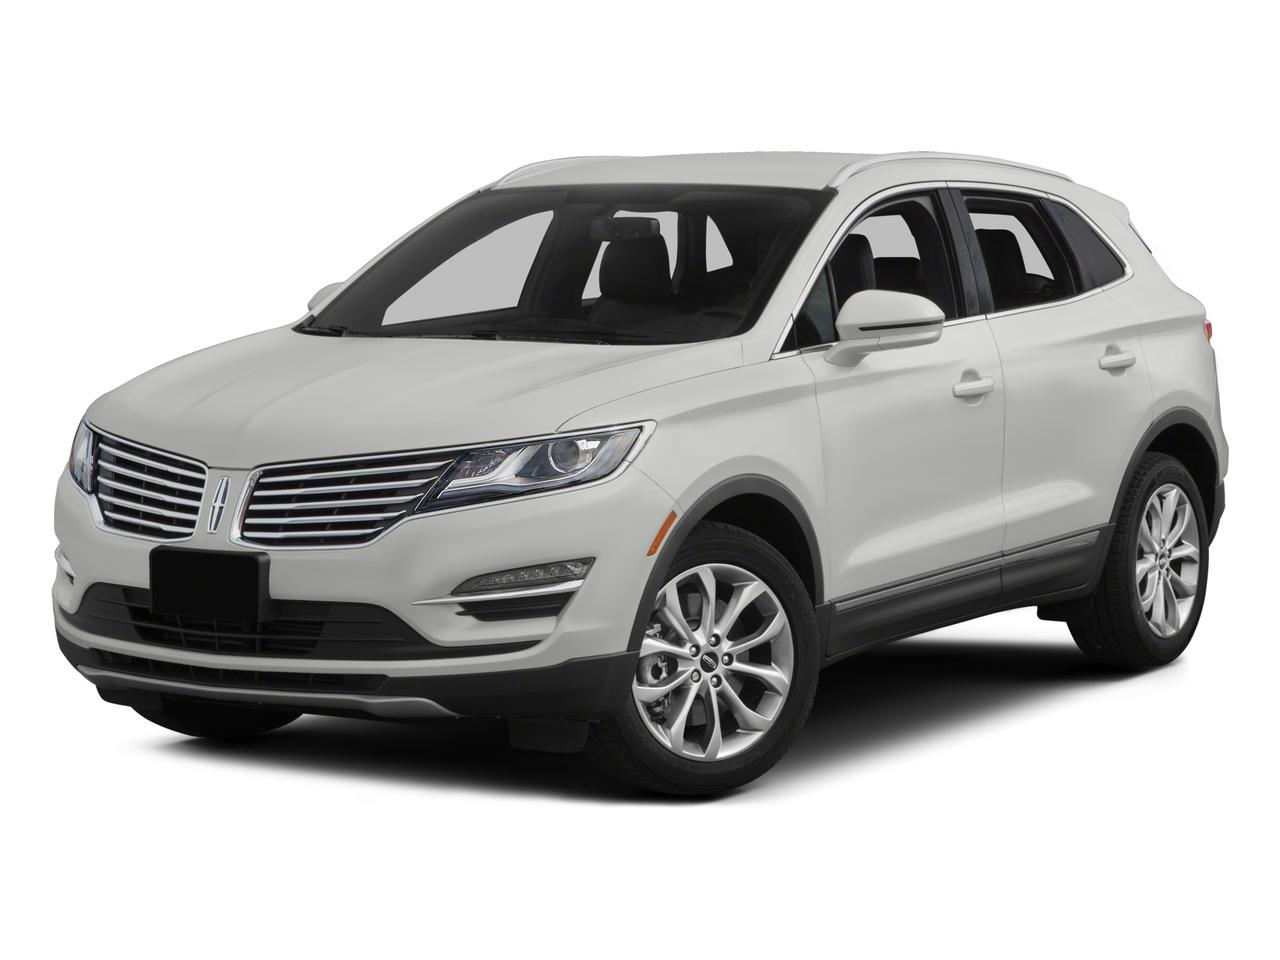 2015 LINCOLN MKC Vehicle Photo in Trevose, PA 19053-4984